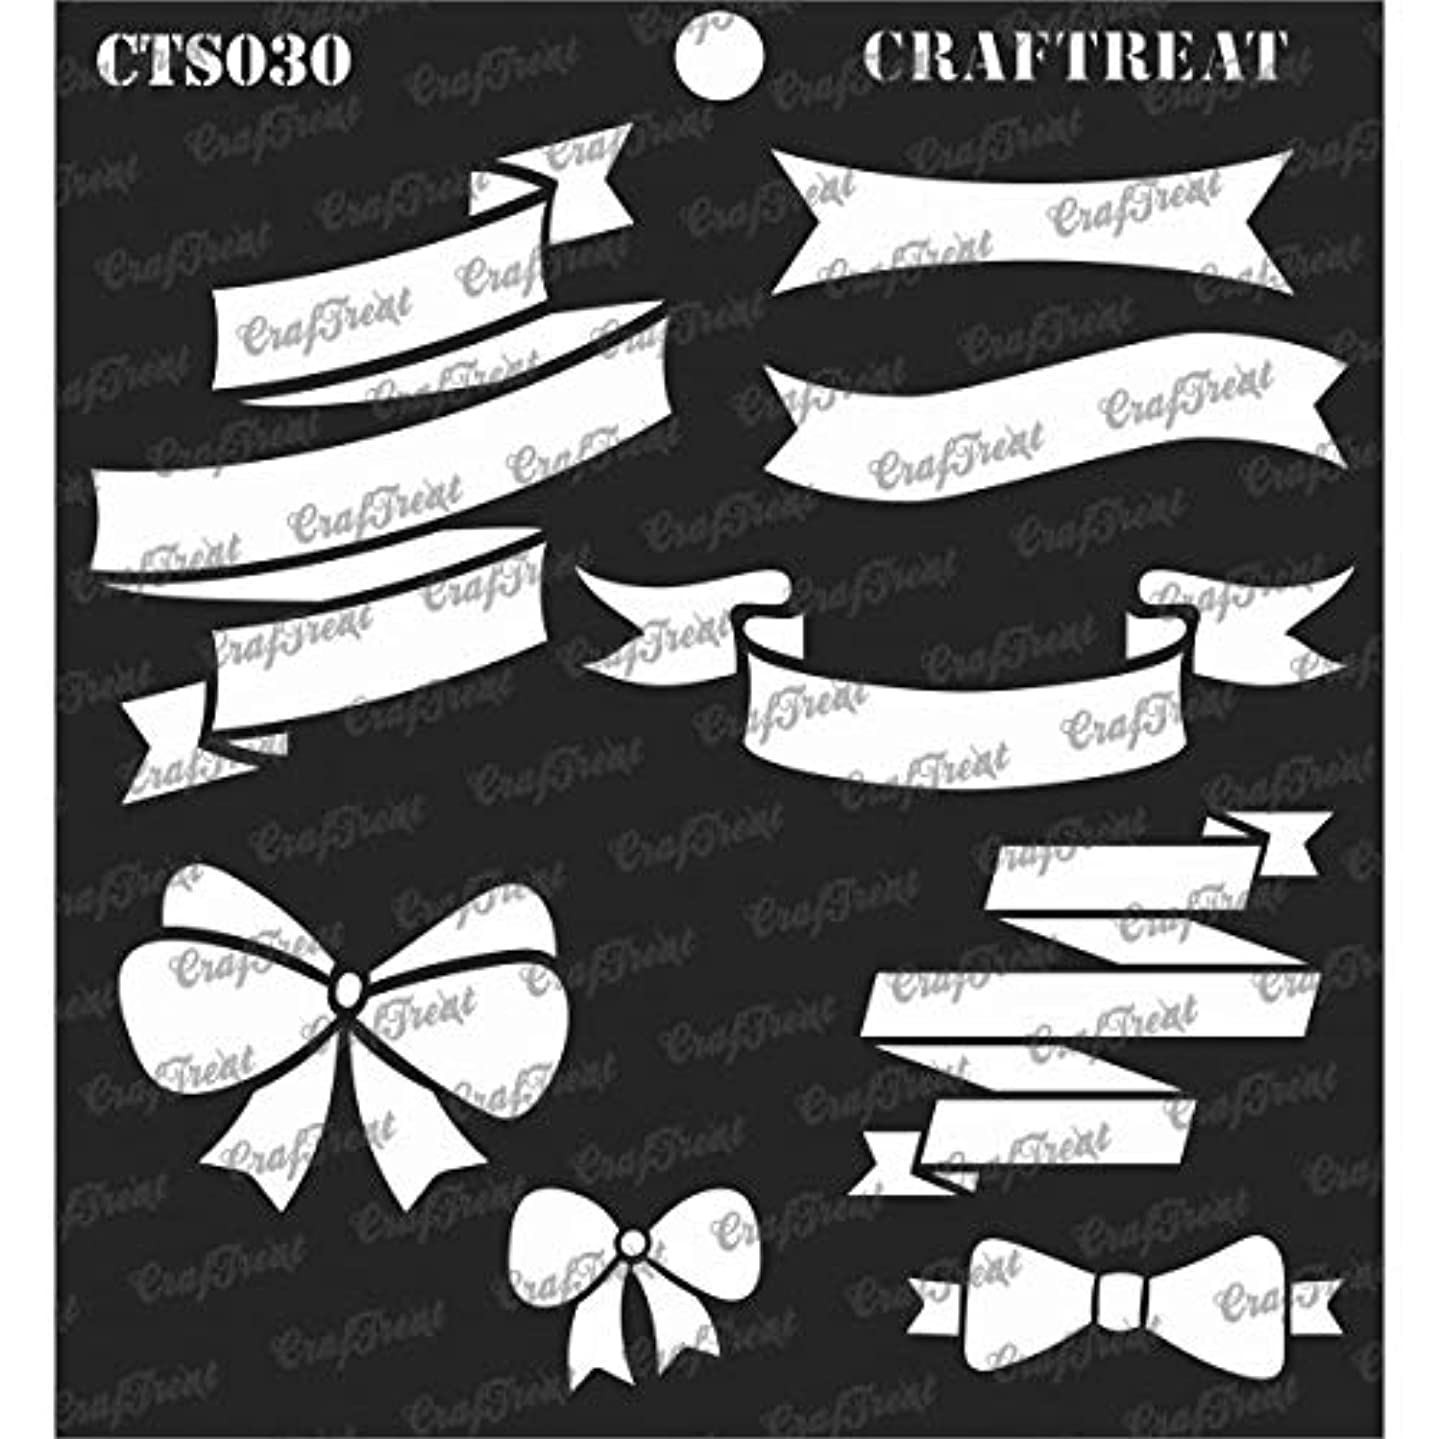 CrafTreat Stencil - Ribbon Banners   Reusable Painting Template for Journal, Notebook, Home Decor, Crafting, DIY Albums, Scrapbook and Printing on Paper, Floor, Wall, Tile, Fabric, Wood 6